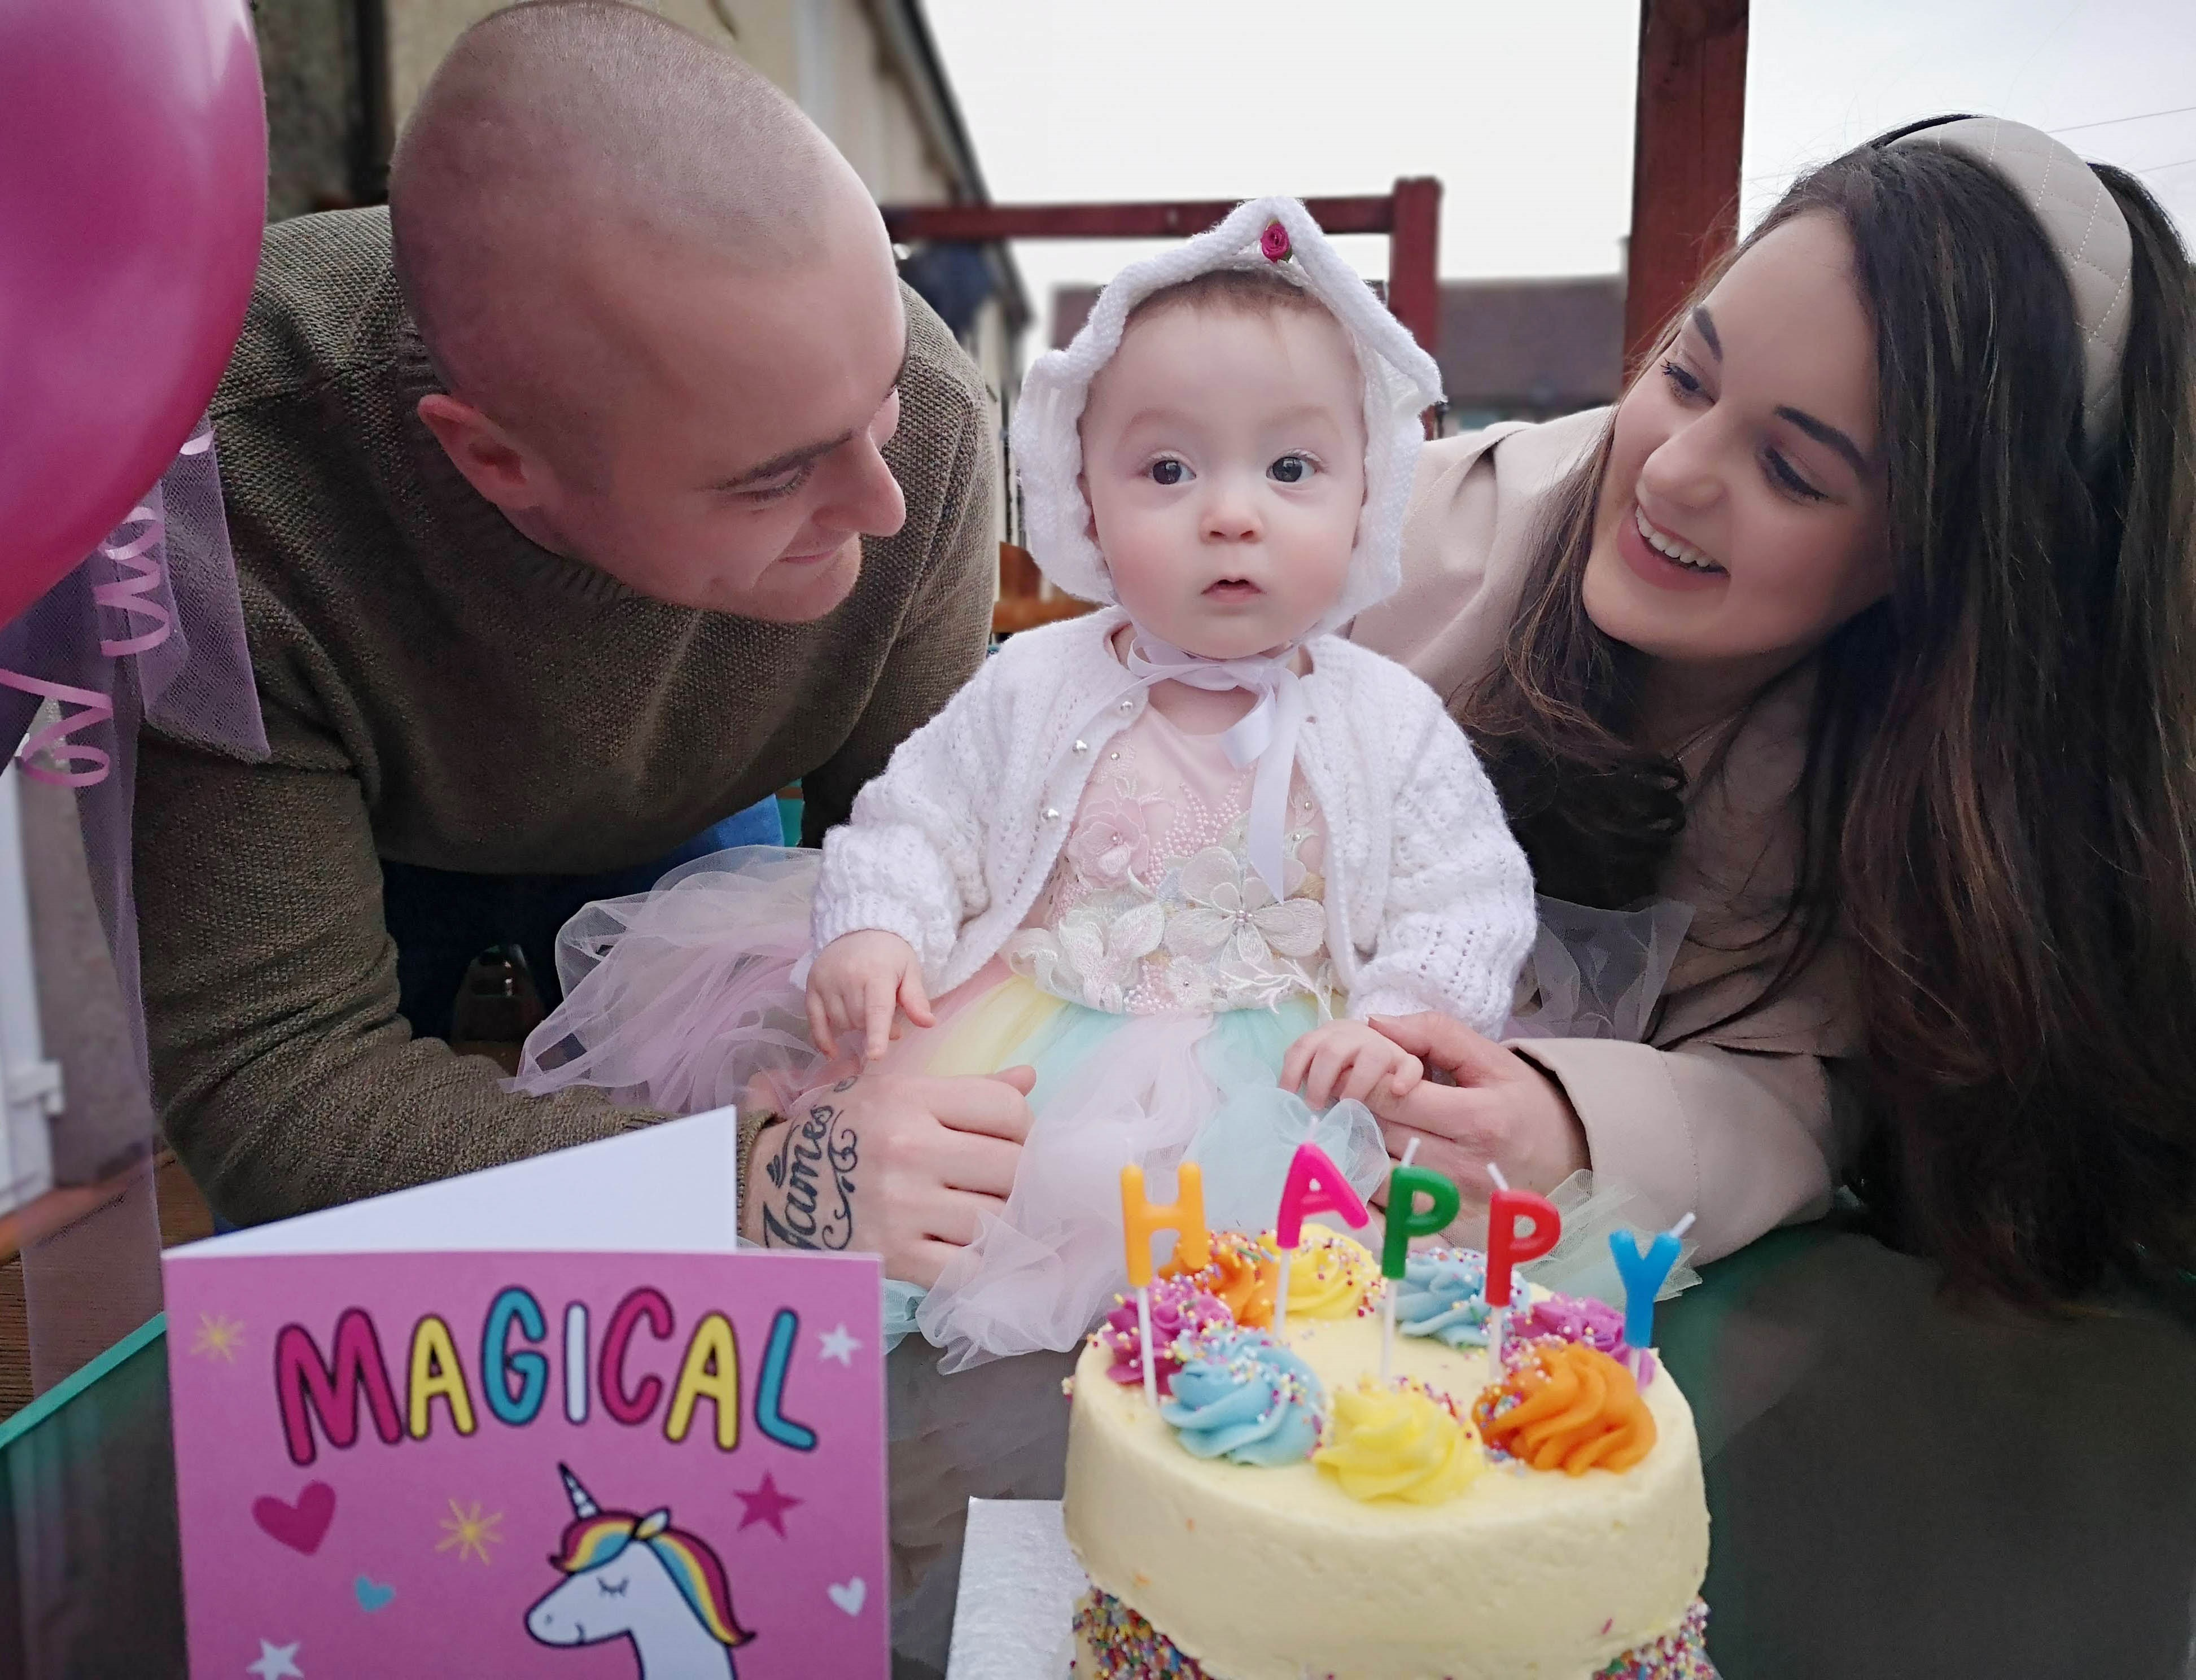 SLC Tot who battled COVID as a baby is thriving as first birthday celebrations approach